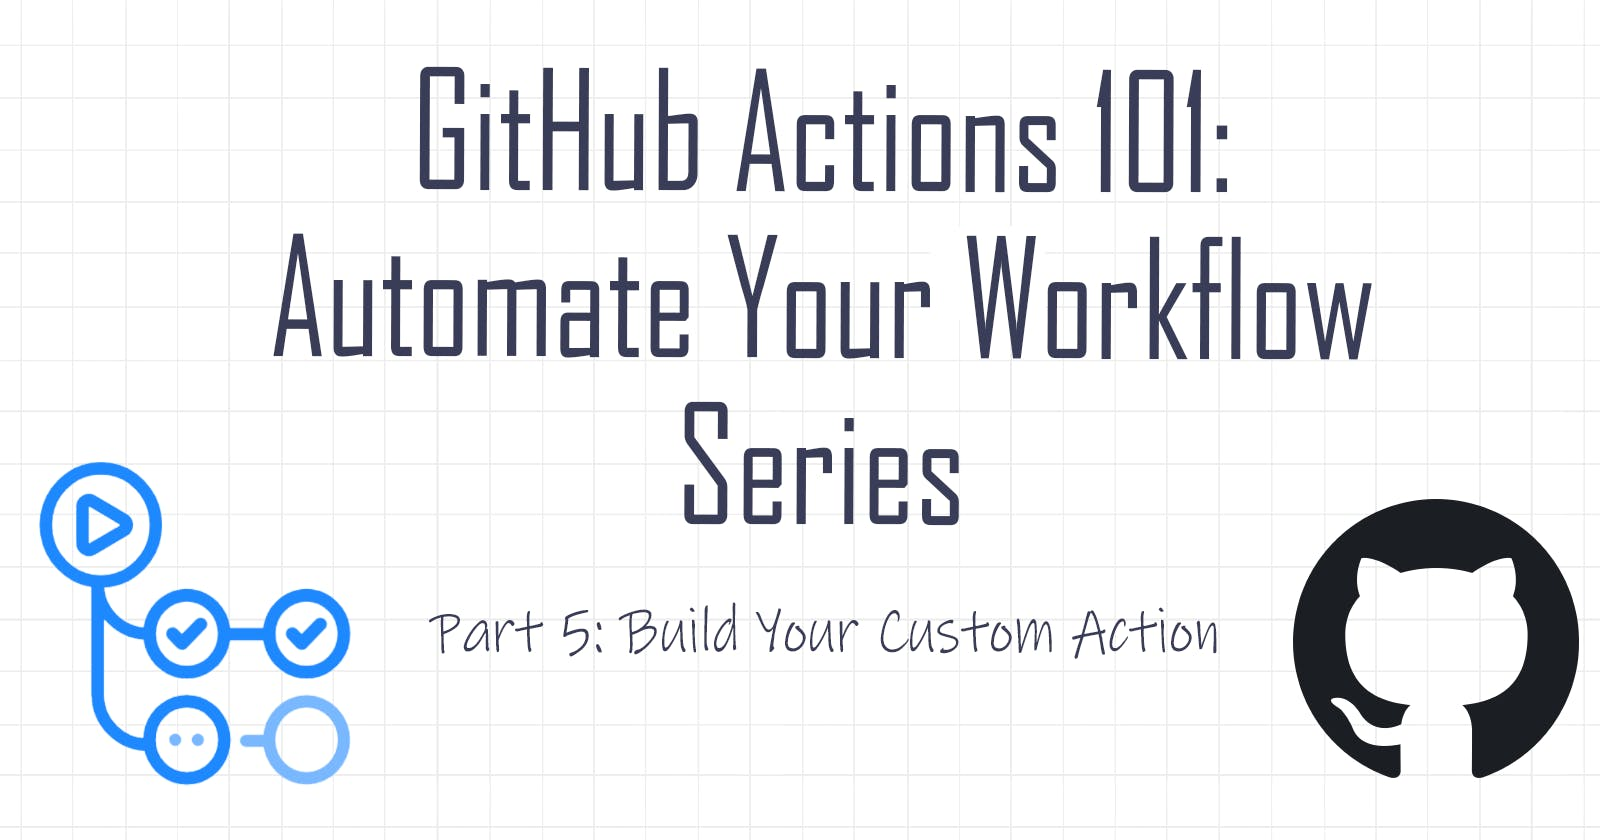 GitHub Actions 101 Finale: Build Your Custom Action